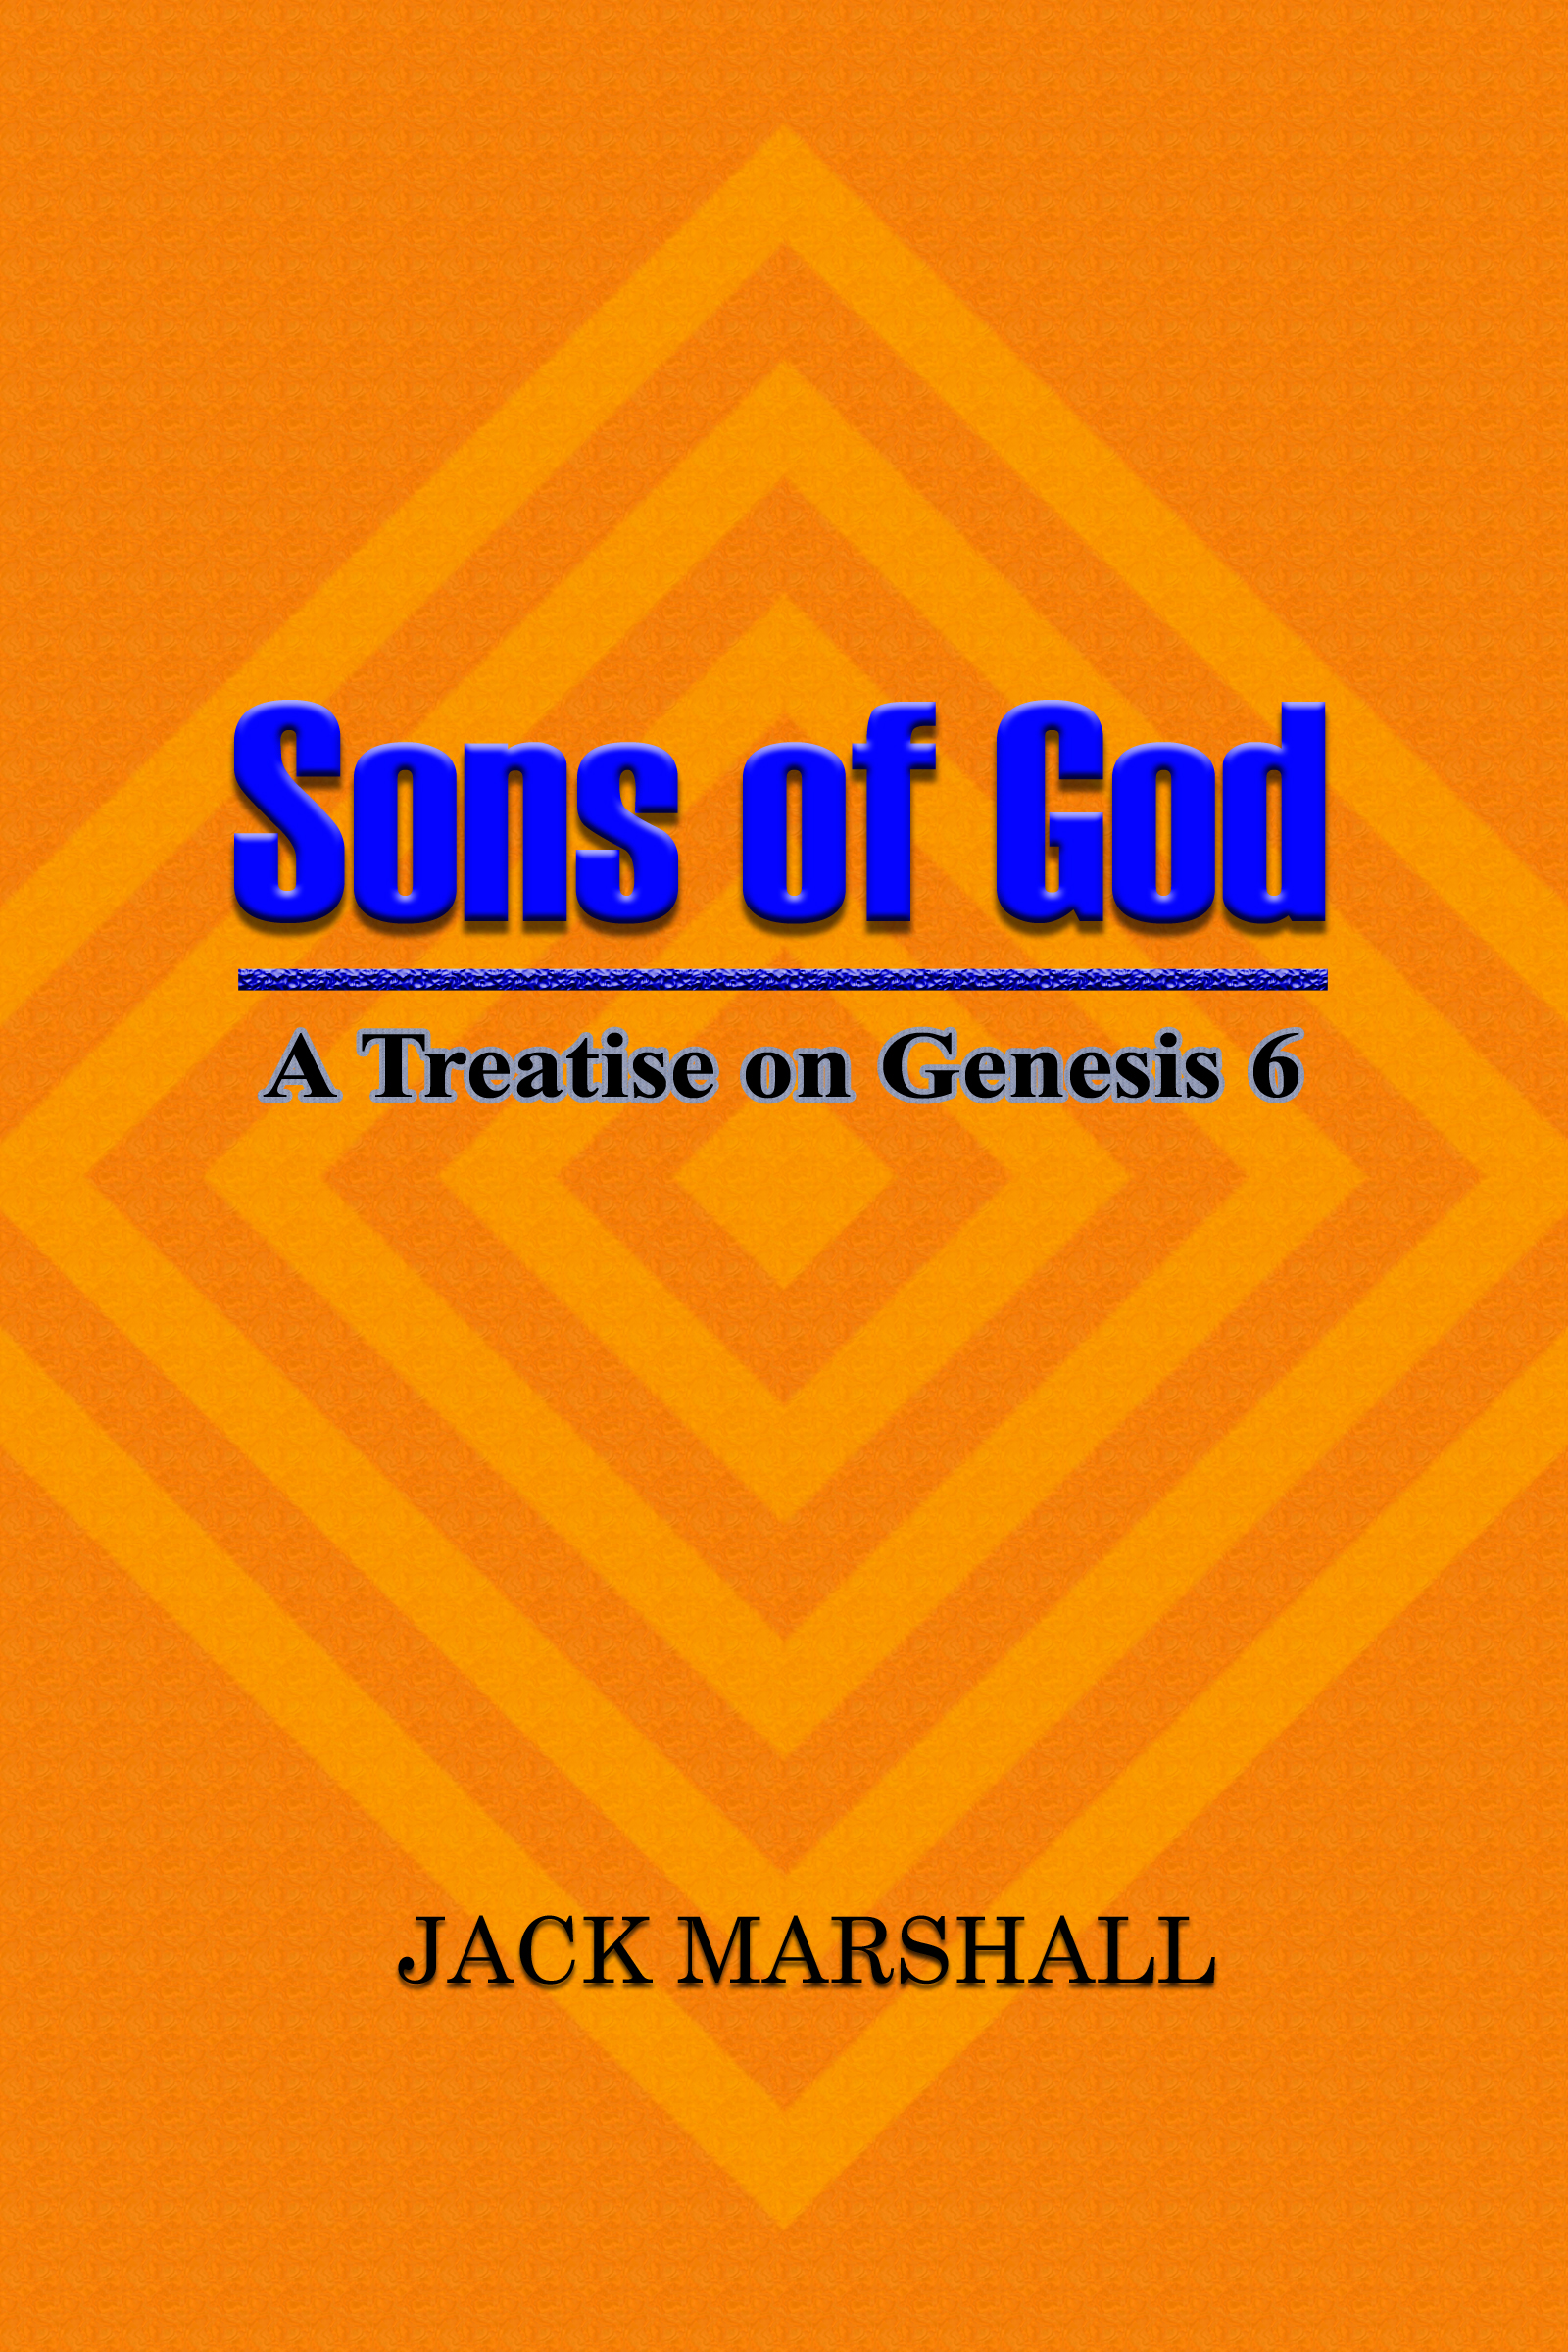 Smashwords – Sons of God - A Treatise on Genesis 6 – a book